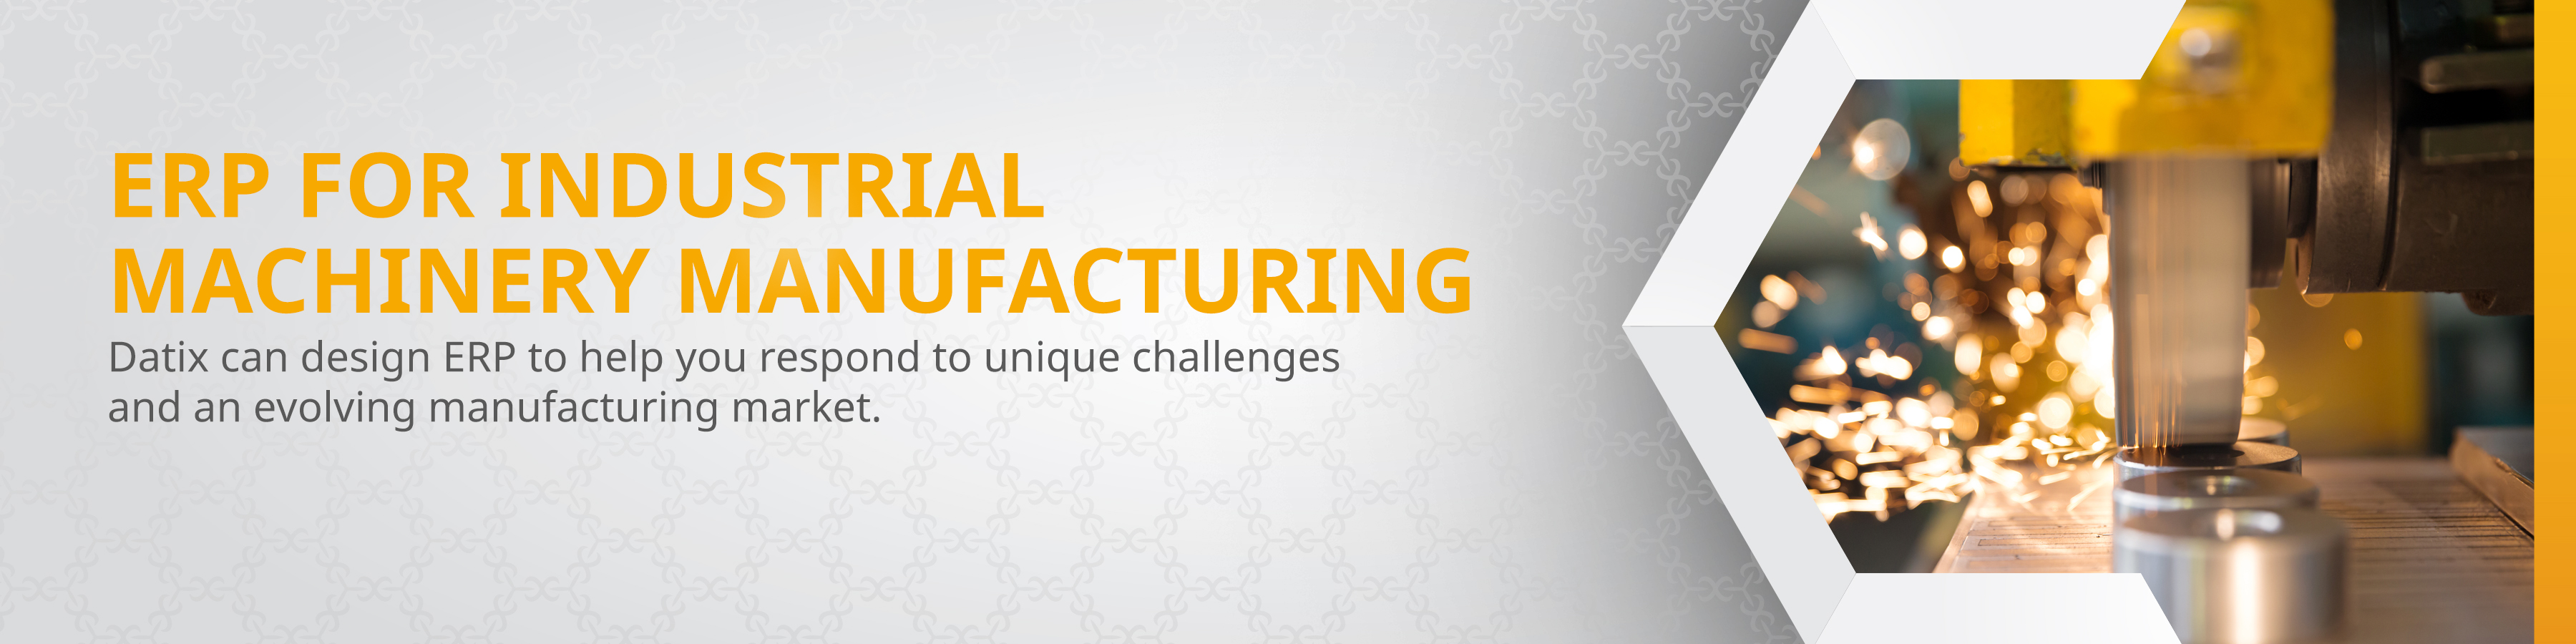 Industrial Machinery Manufacturing ERP